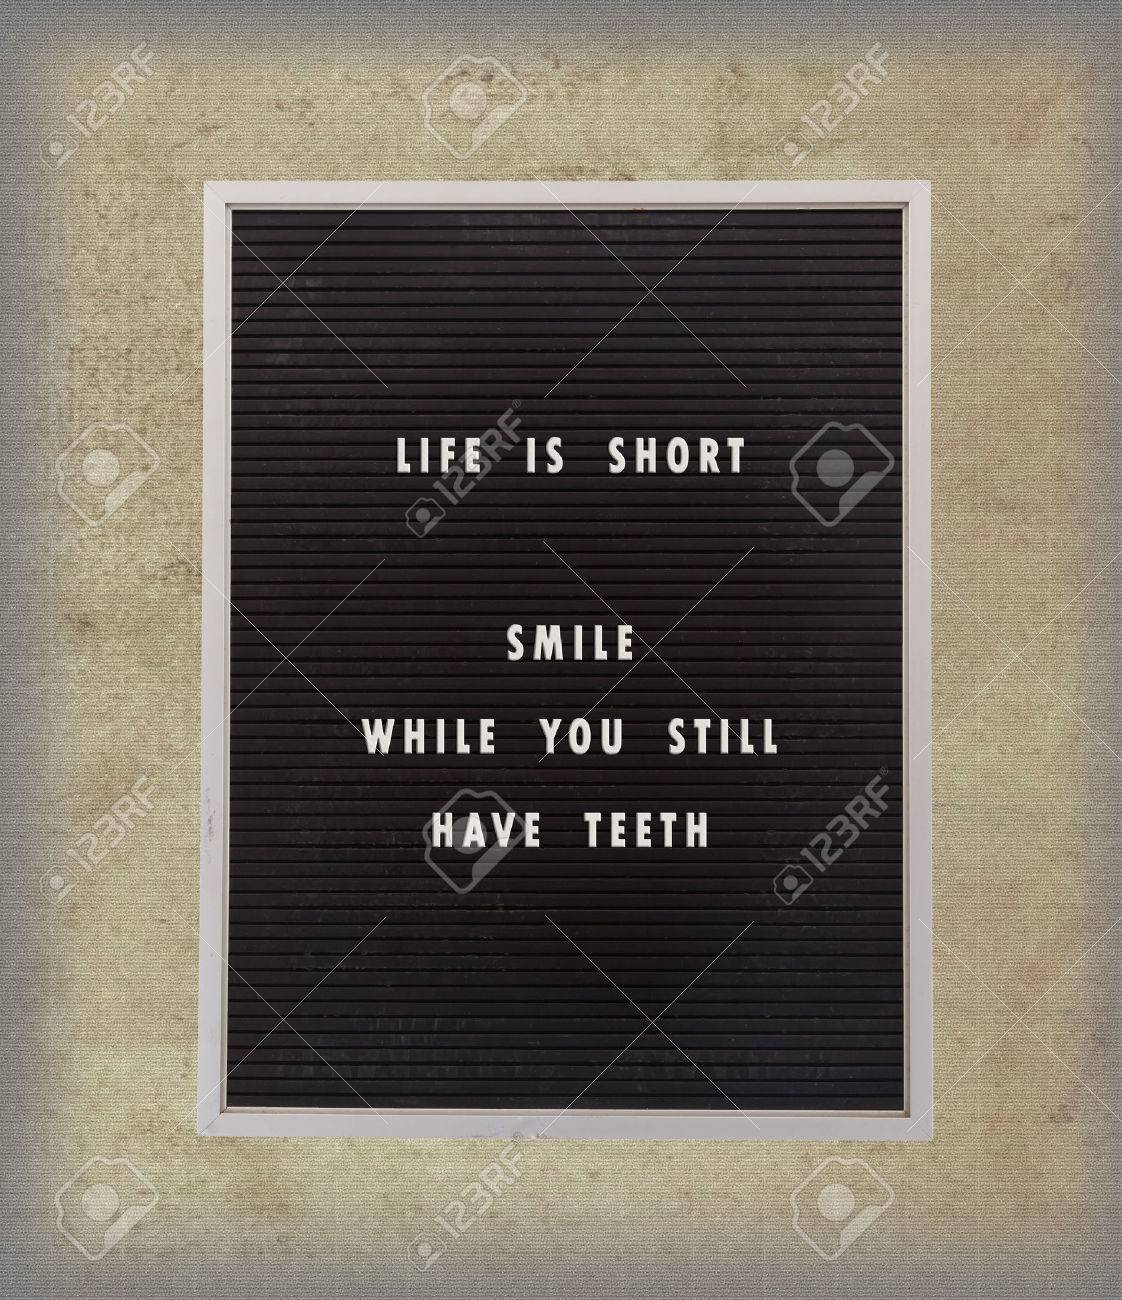 Funny Inspirational Quotation About Life On A Very Old Menu Stock